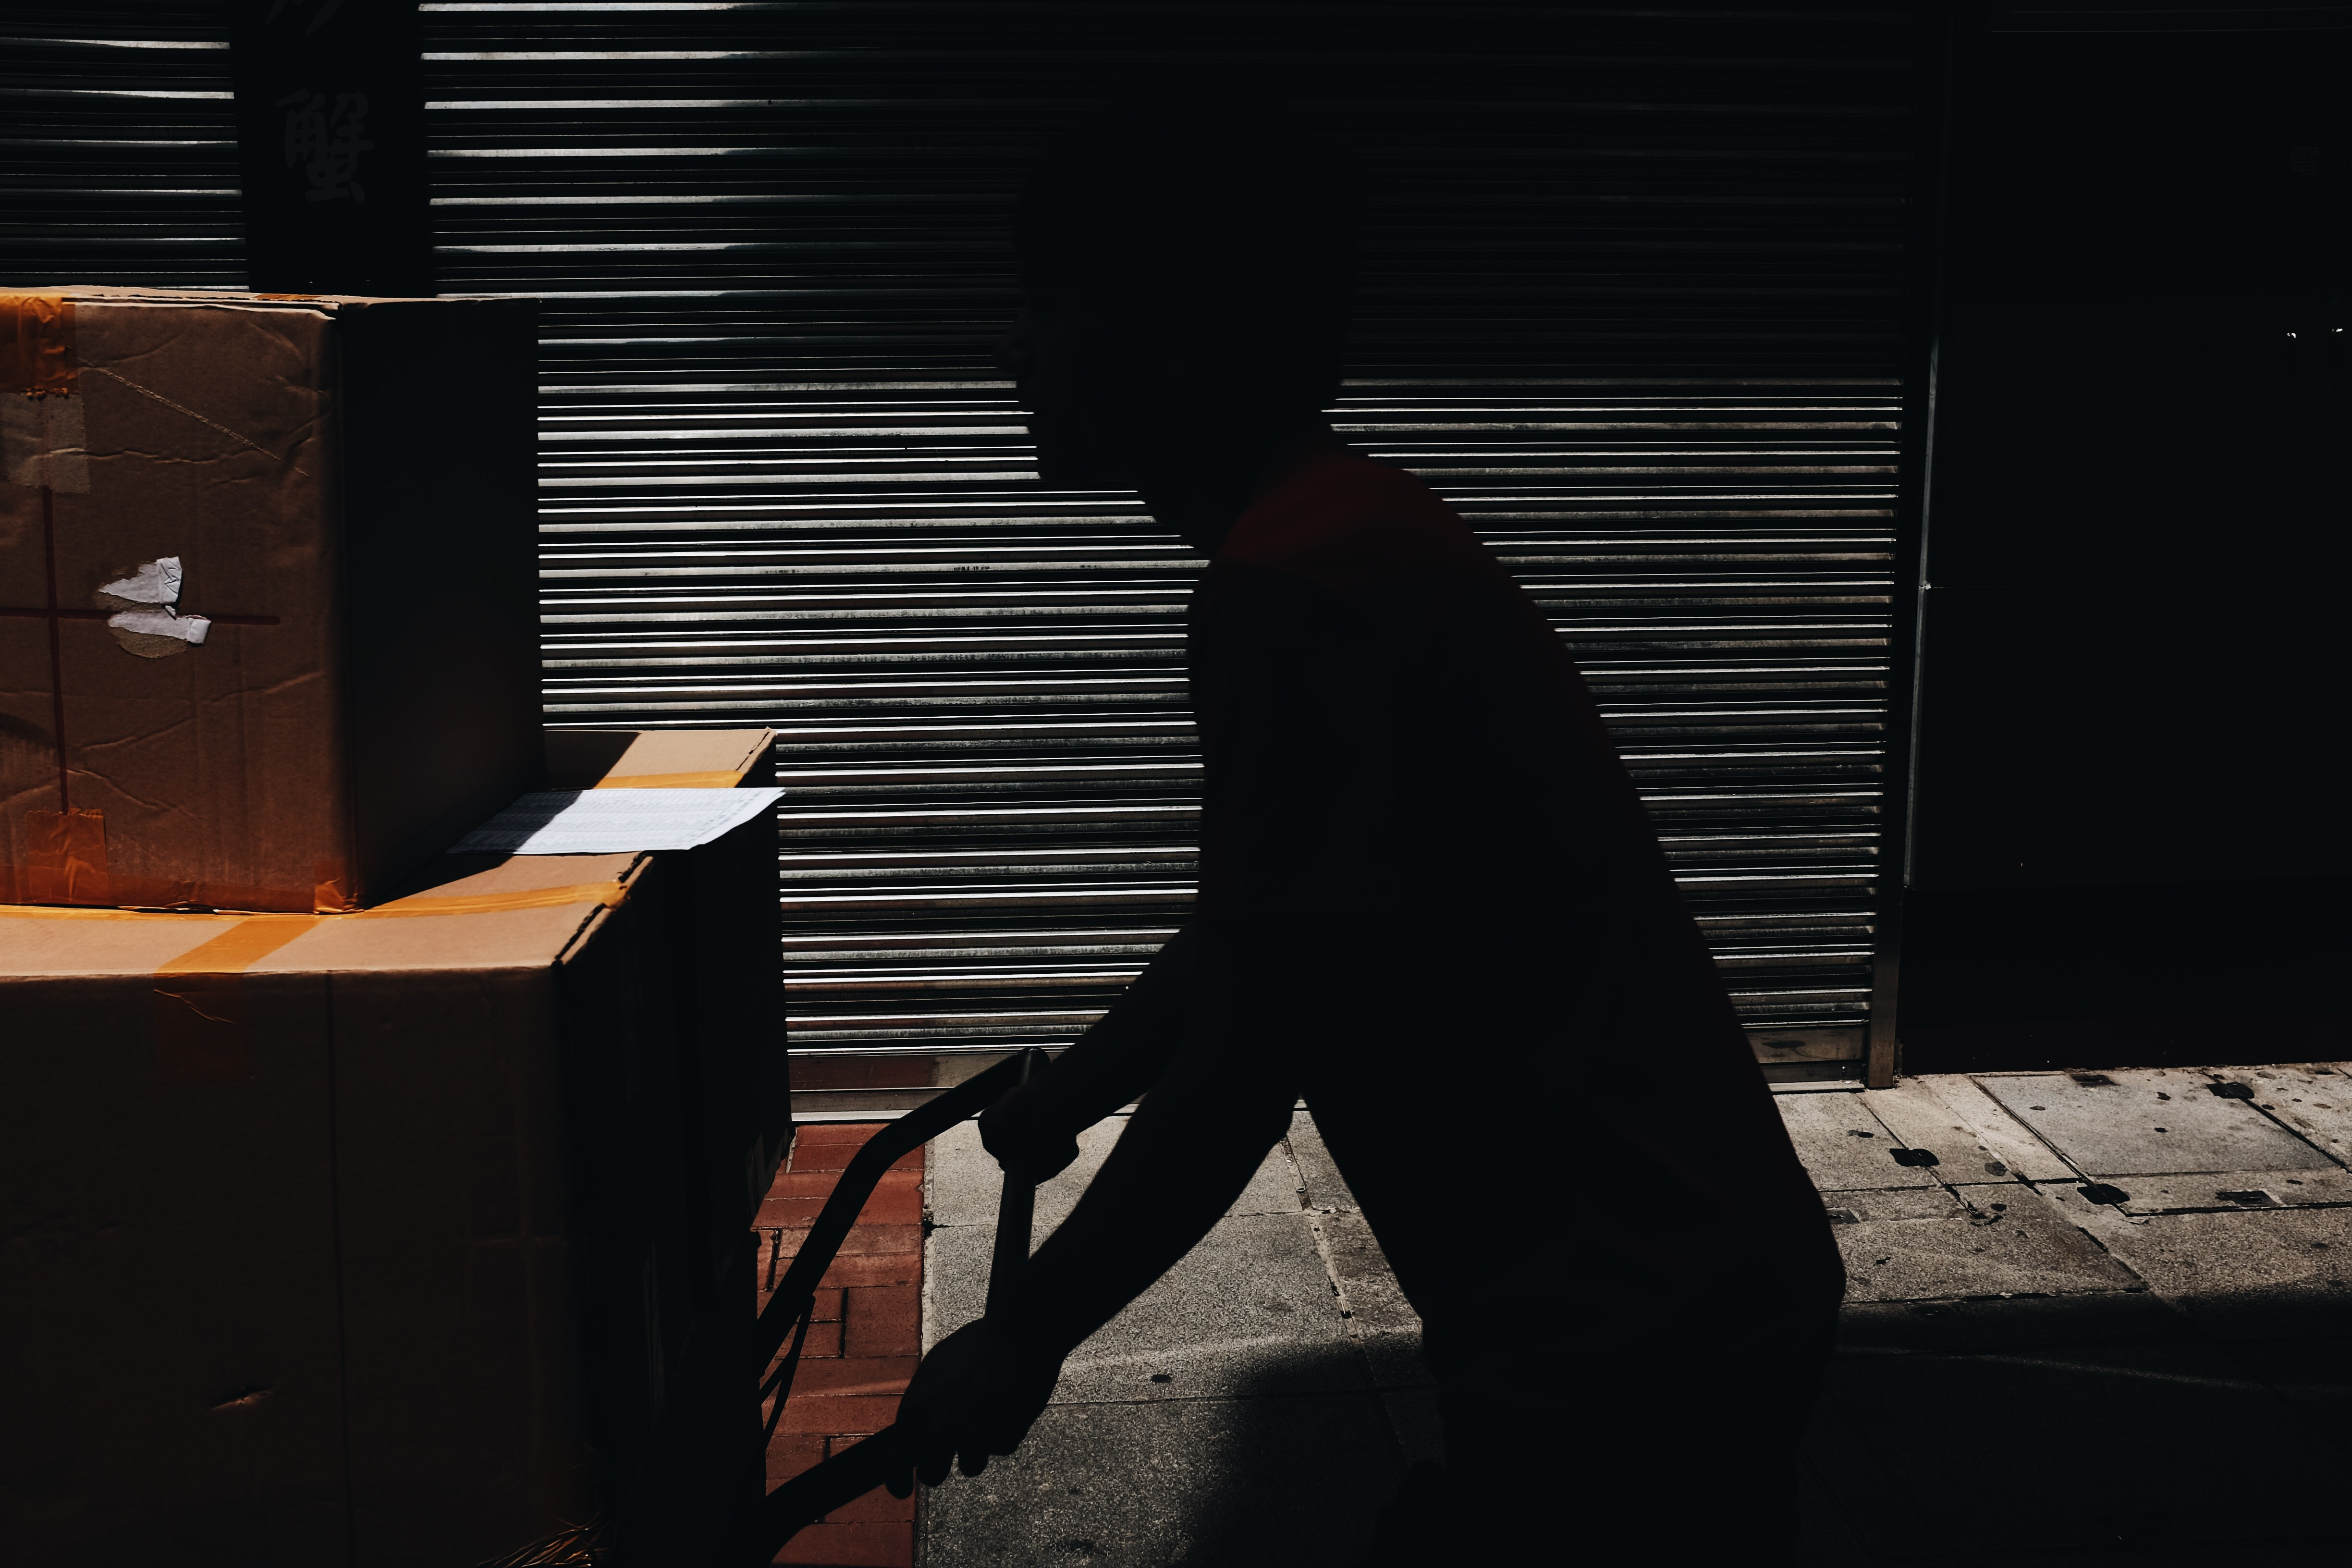 A silhouette of a person pushing a cart with cardboard boxes